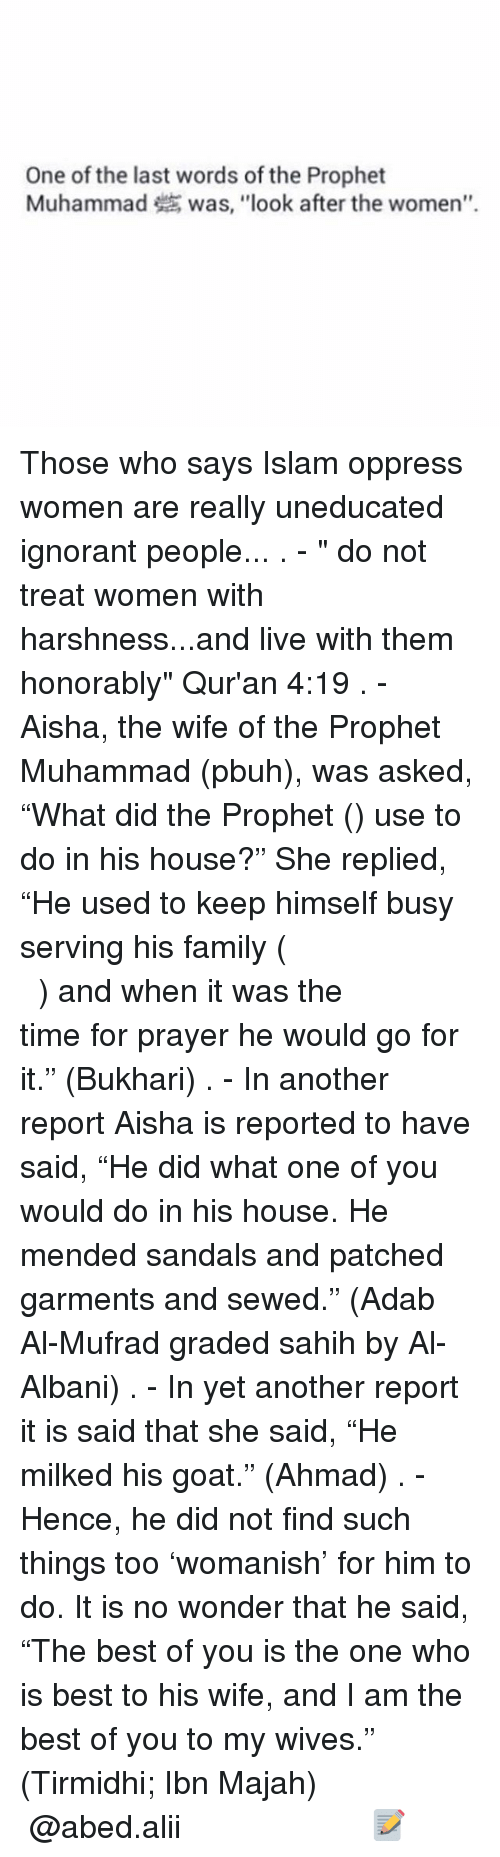 """oppressed: One of the last words of the Prophet  Muhammad was, """"look after the women"""". Those who says Islam oppress women are really uneducated ignorant people... . - """" do not treat women with harshness...and live with them honorably"""" Qur'an 4:19 . - Aisha, the wife of the Prophet Muhammad (pbuh), was asked, """"What did the Prophet (ﷺ) use to do in his house?"""" She replied, """"He used to keep himself busy serving his family (كَانَ يَكُونُ فِي مِهْنَةِ أَهْلِهِ) and when it was the time for prayer he would go for it."""" (Bukhari) . - In another report Aisha is reported to have said, """"He did what one of you would do in his house. He mended sandals and patched garments and sewed."""" (Adab Al-Mufrad graded sahih by Al-Albani) . - In yet another report it is said that she said, """"He milked his goat."""" (Ahmad) . - Hence, he did not find such things too 'womanish' for him to do. It is no wonder that he said, """"The best of you is the one who is best to his wife, and I am the best of you to my wives."""" (Tirmidhi; Ibn Majah) ▃▃▃▃▃▃▃▃▃▃▃▃▃▃▃▃▃▃▃▃ @abed.alii 📝"""